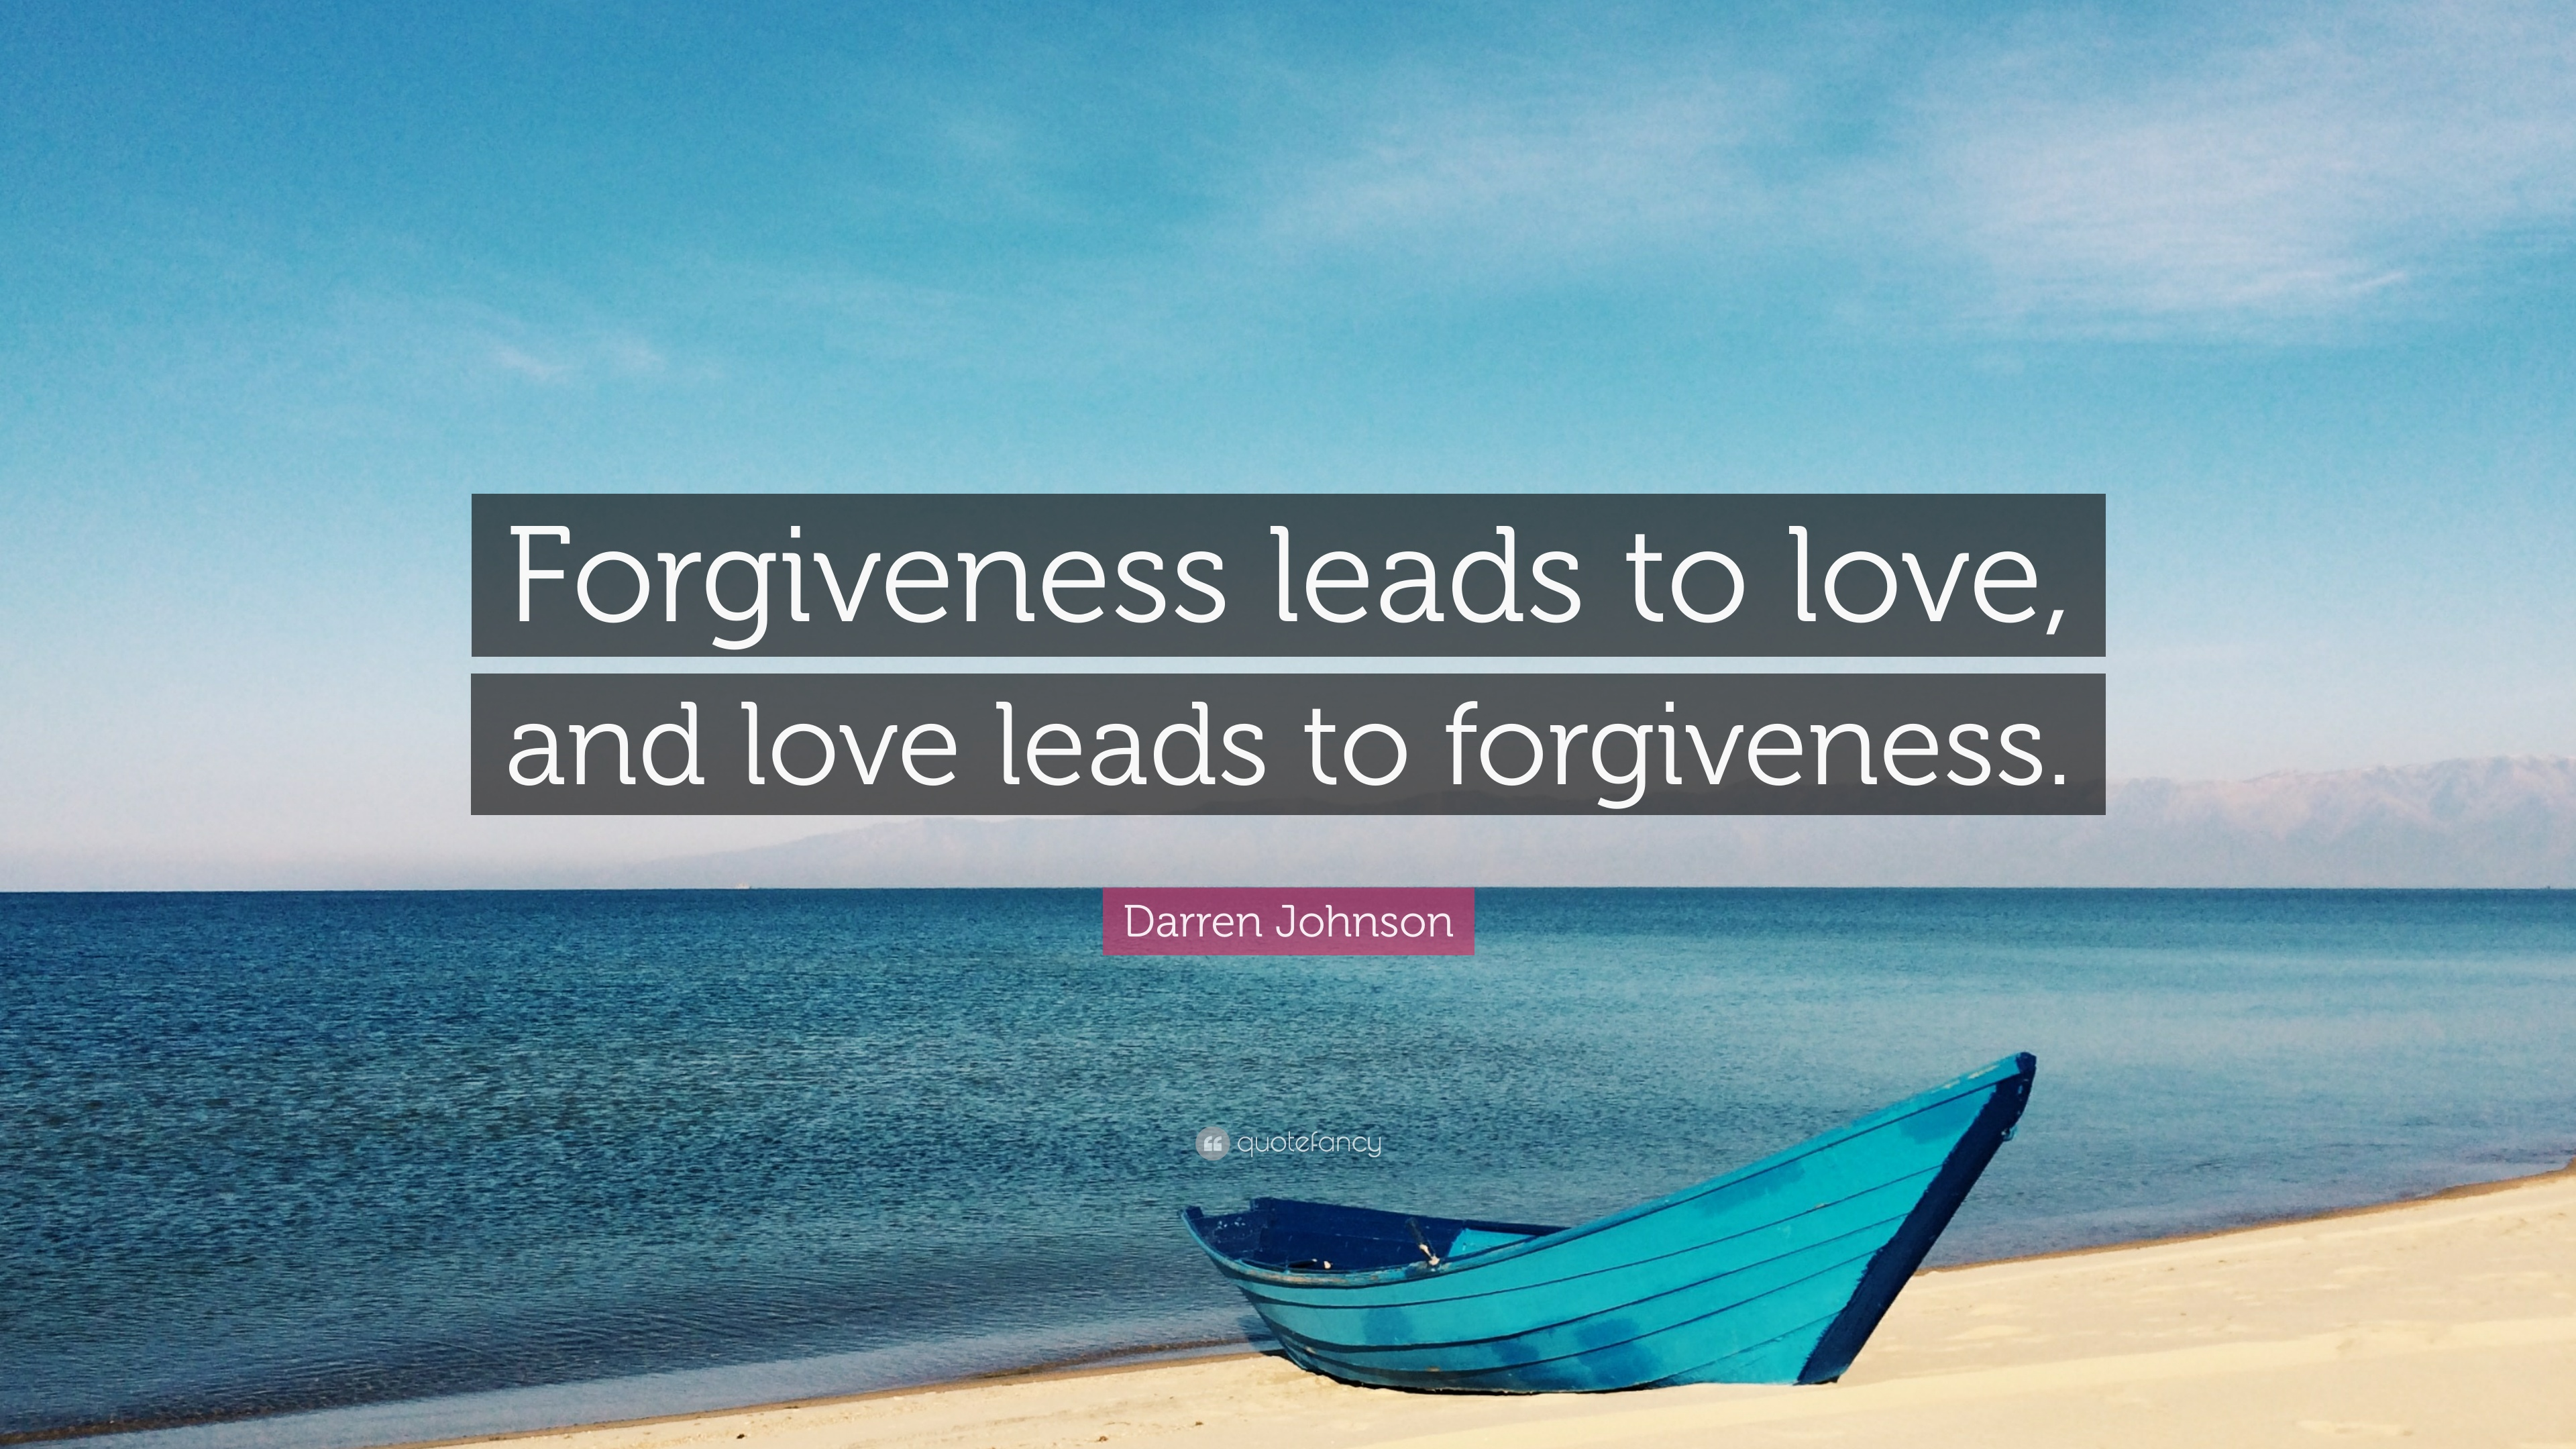 Incroyable Darren Johnson Quote: U201cForgiveness Leads To Love, And Love Leads To  Forgiveness.